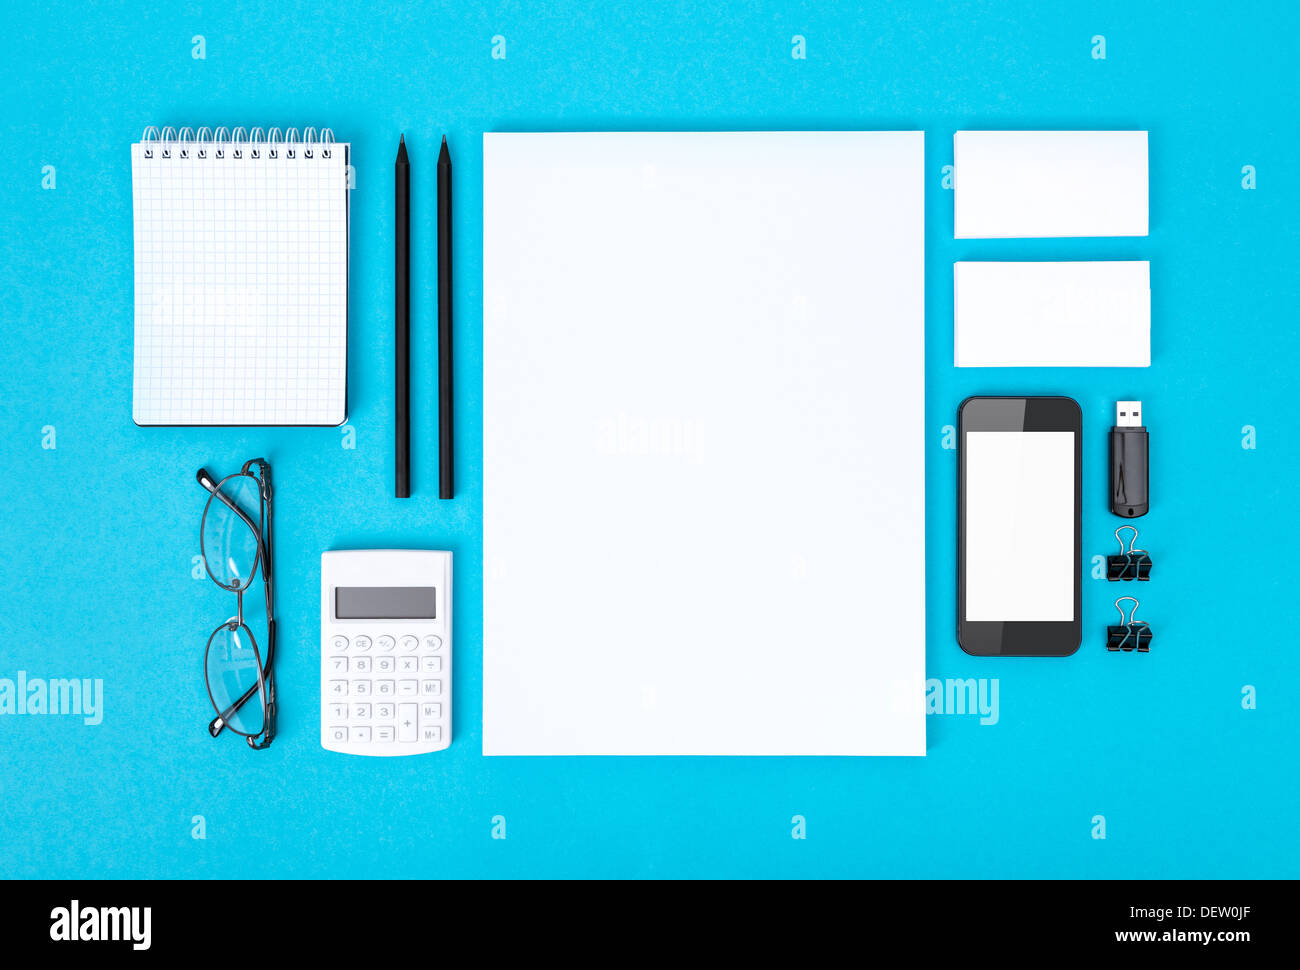 Set of variety blank office objects organized for company presentation or corporate identity. Isolated on blue paper - Stock Image